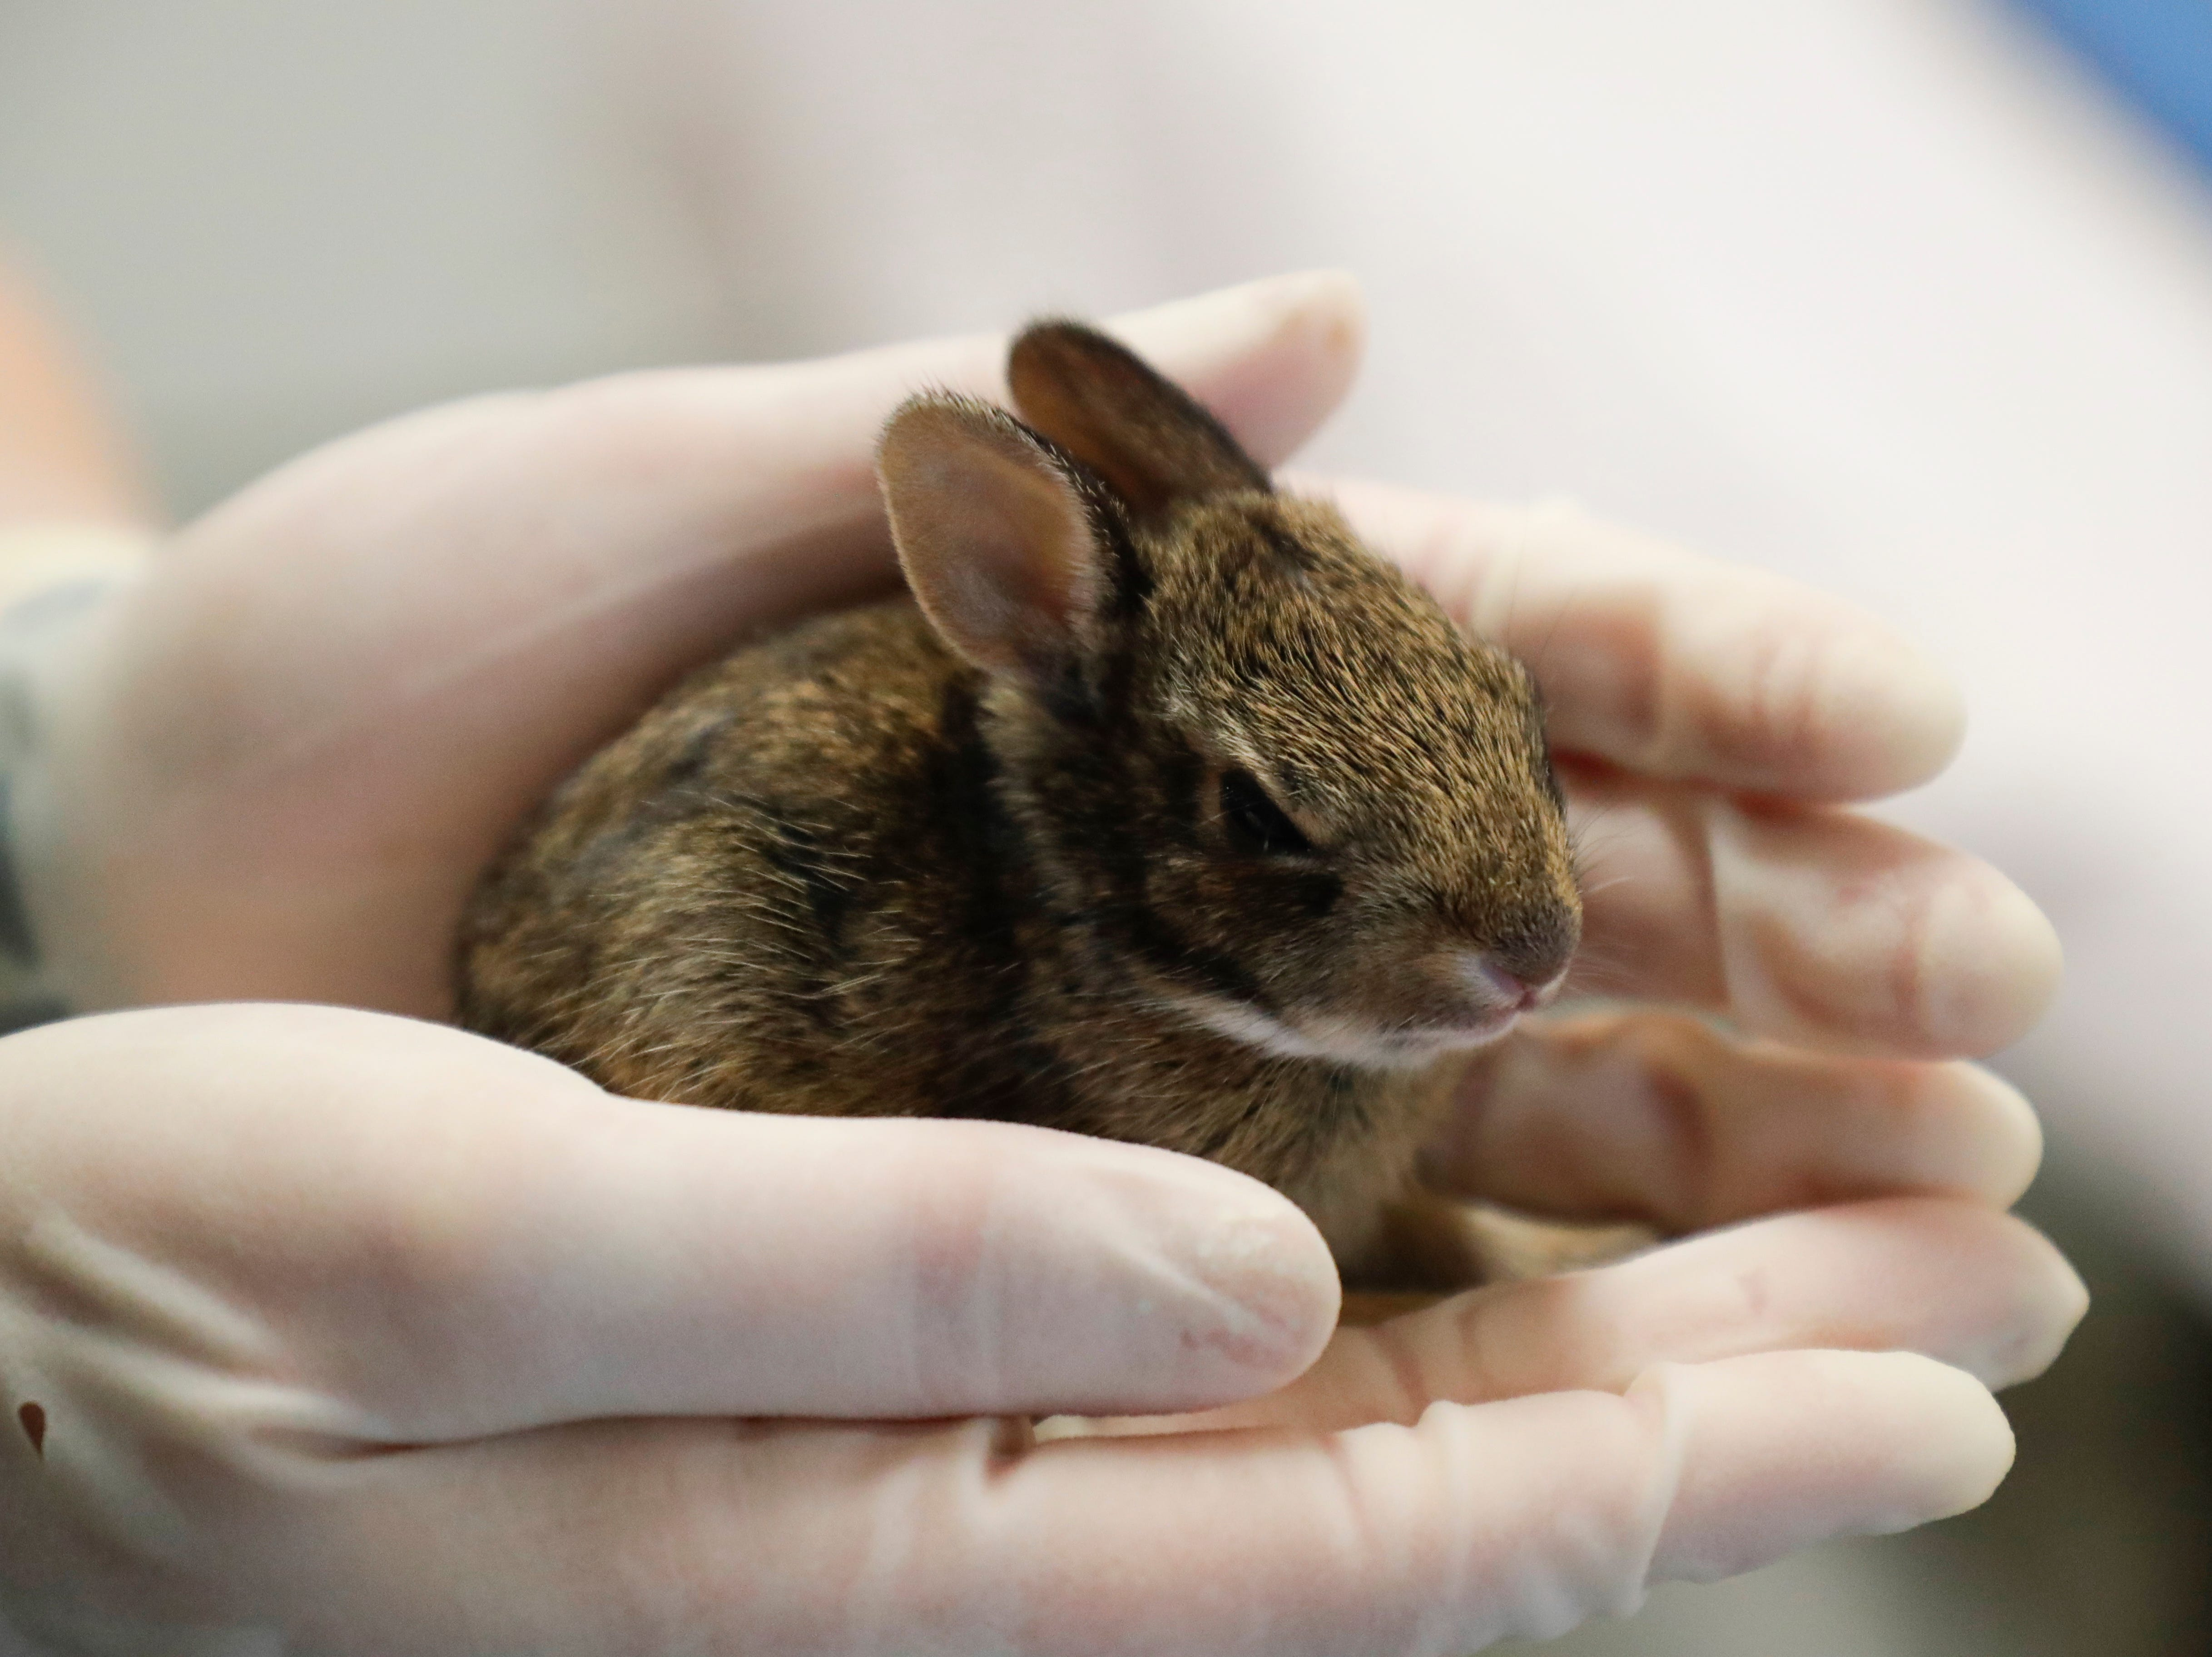 Wildlife technician Kayla Gainer holds a baby cottontail rabbit at St. Francis Wildlife Hospital Monday, May 13, 2019.